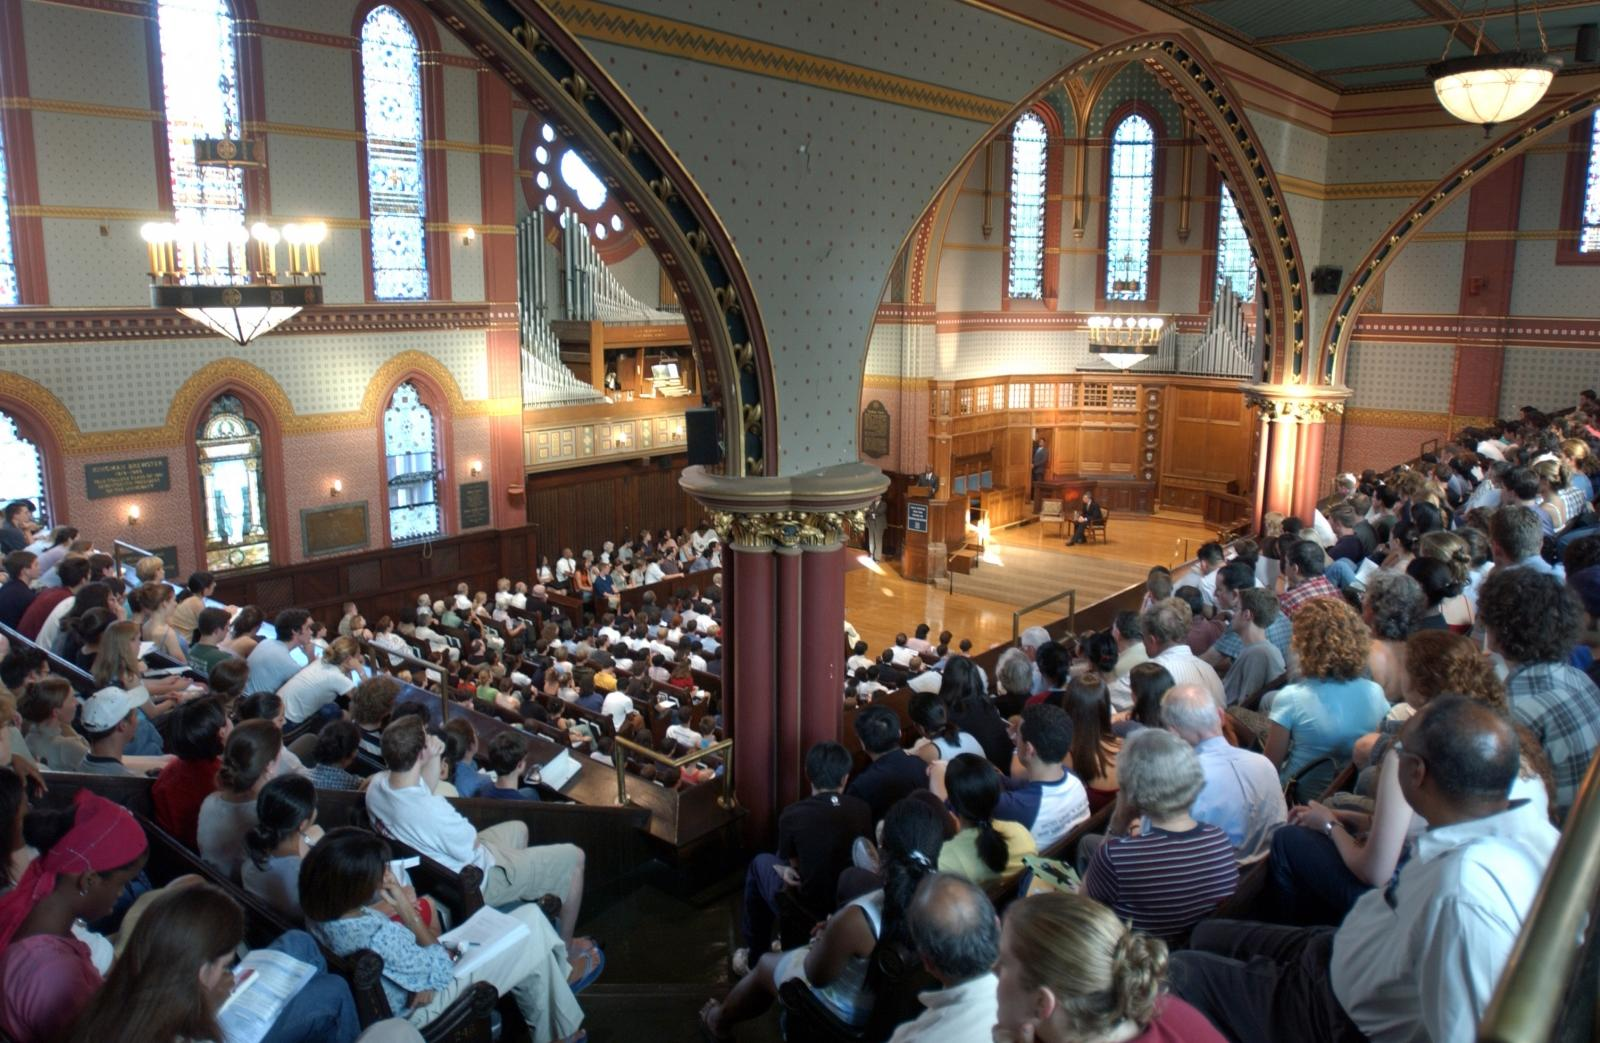 Interior view of Battell Chapel